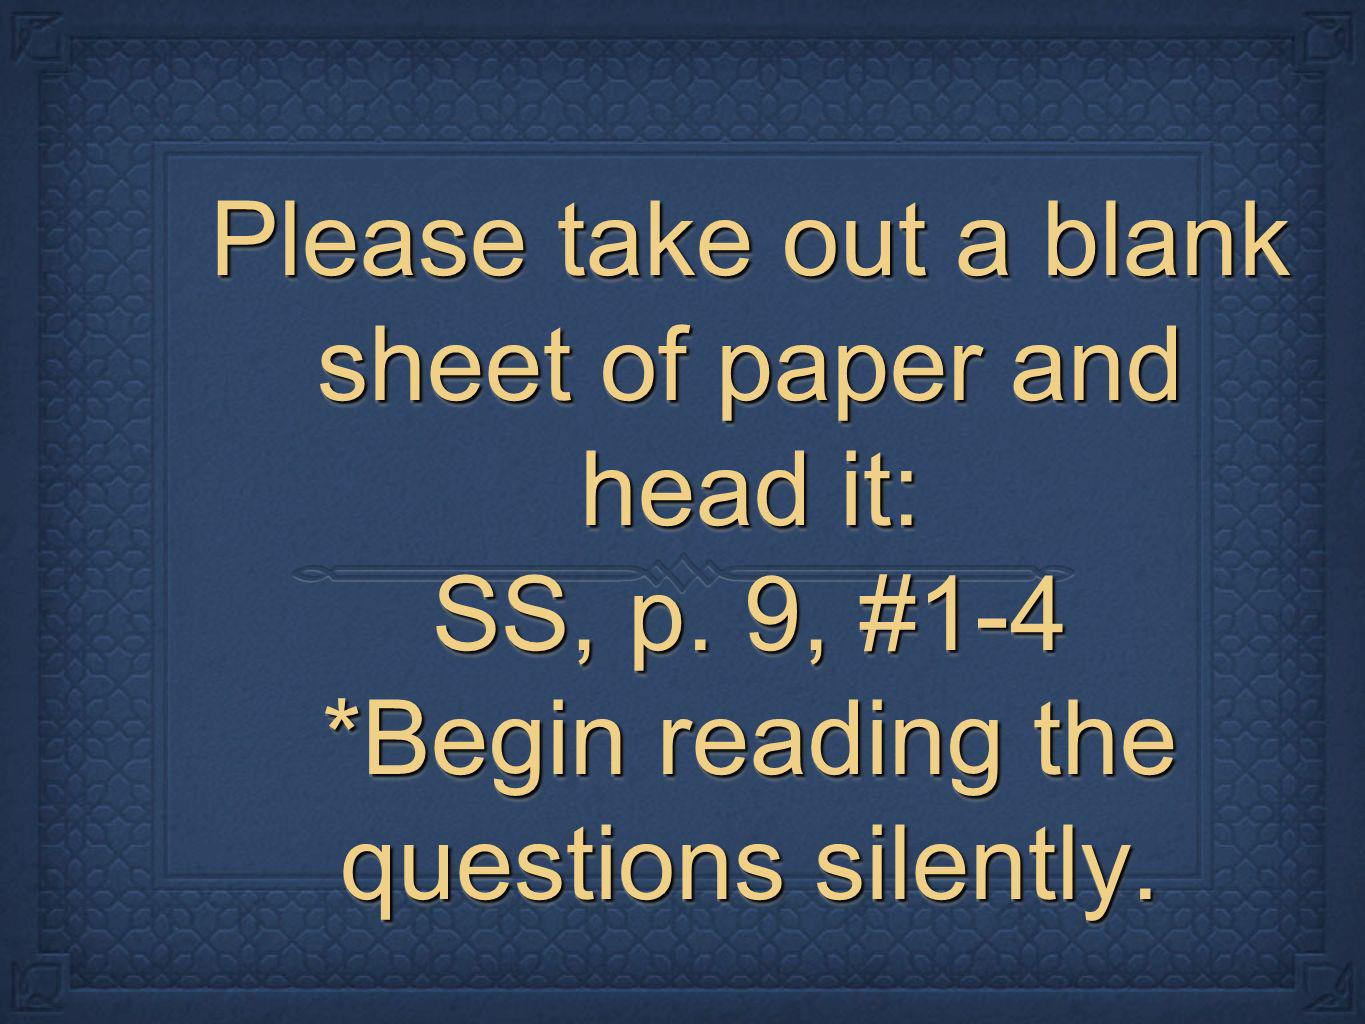 Please take out a blank sheet of paper and head it: SS, p.